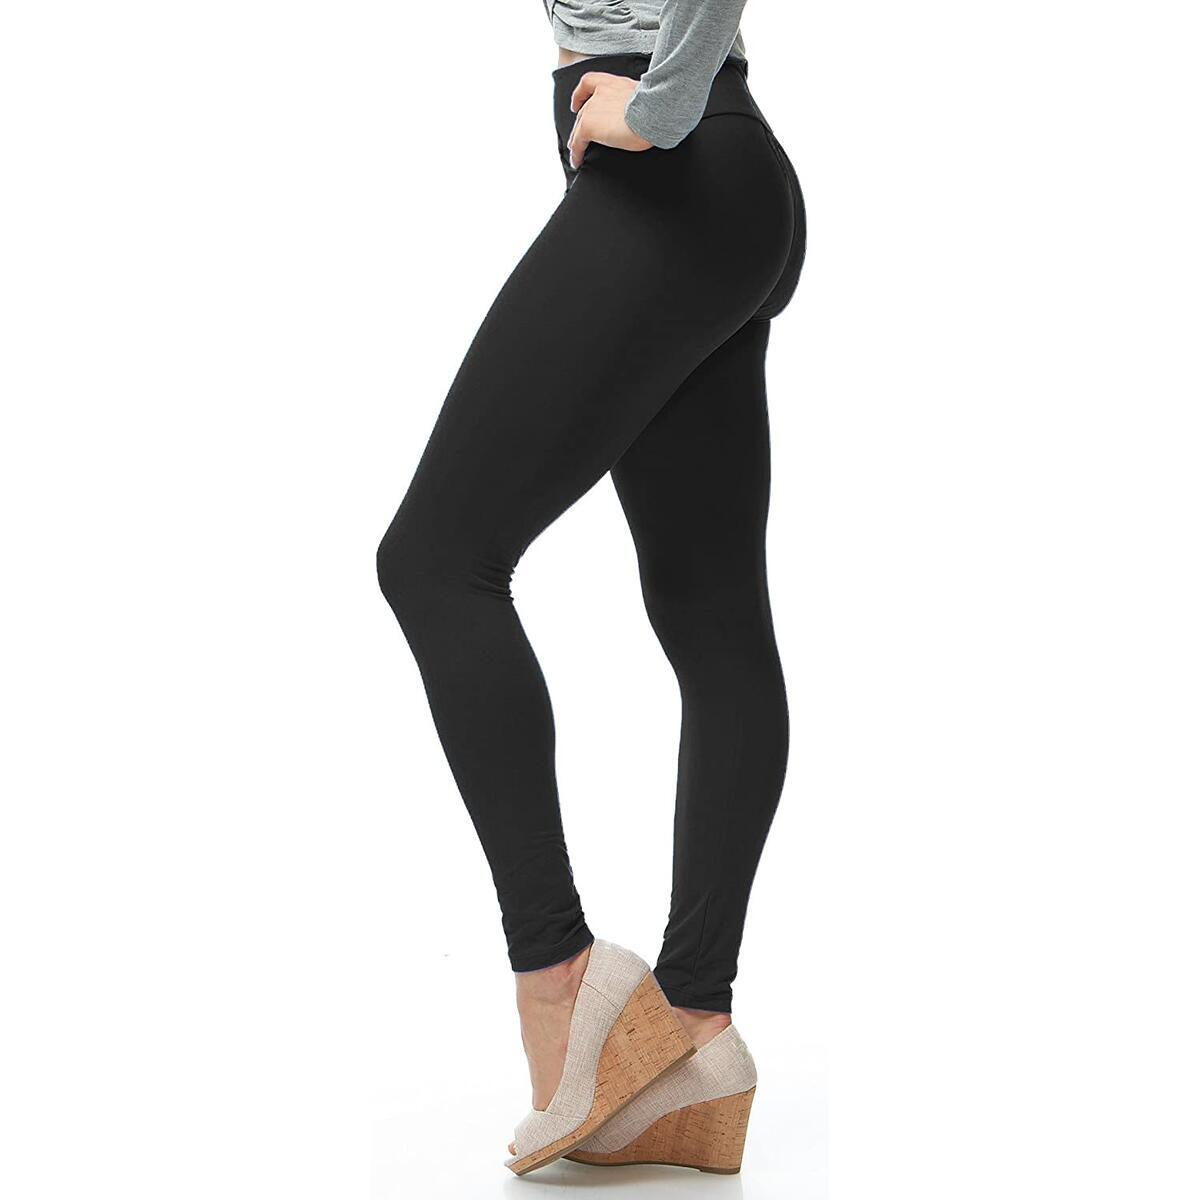 Ultra Soft Leggings for Women XS - 3XL (Any Size-Color)